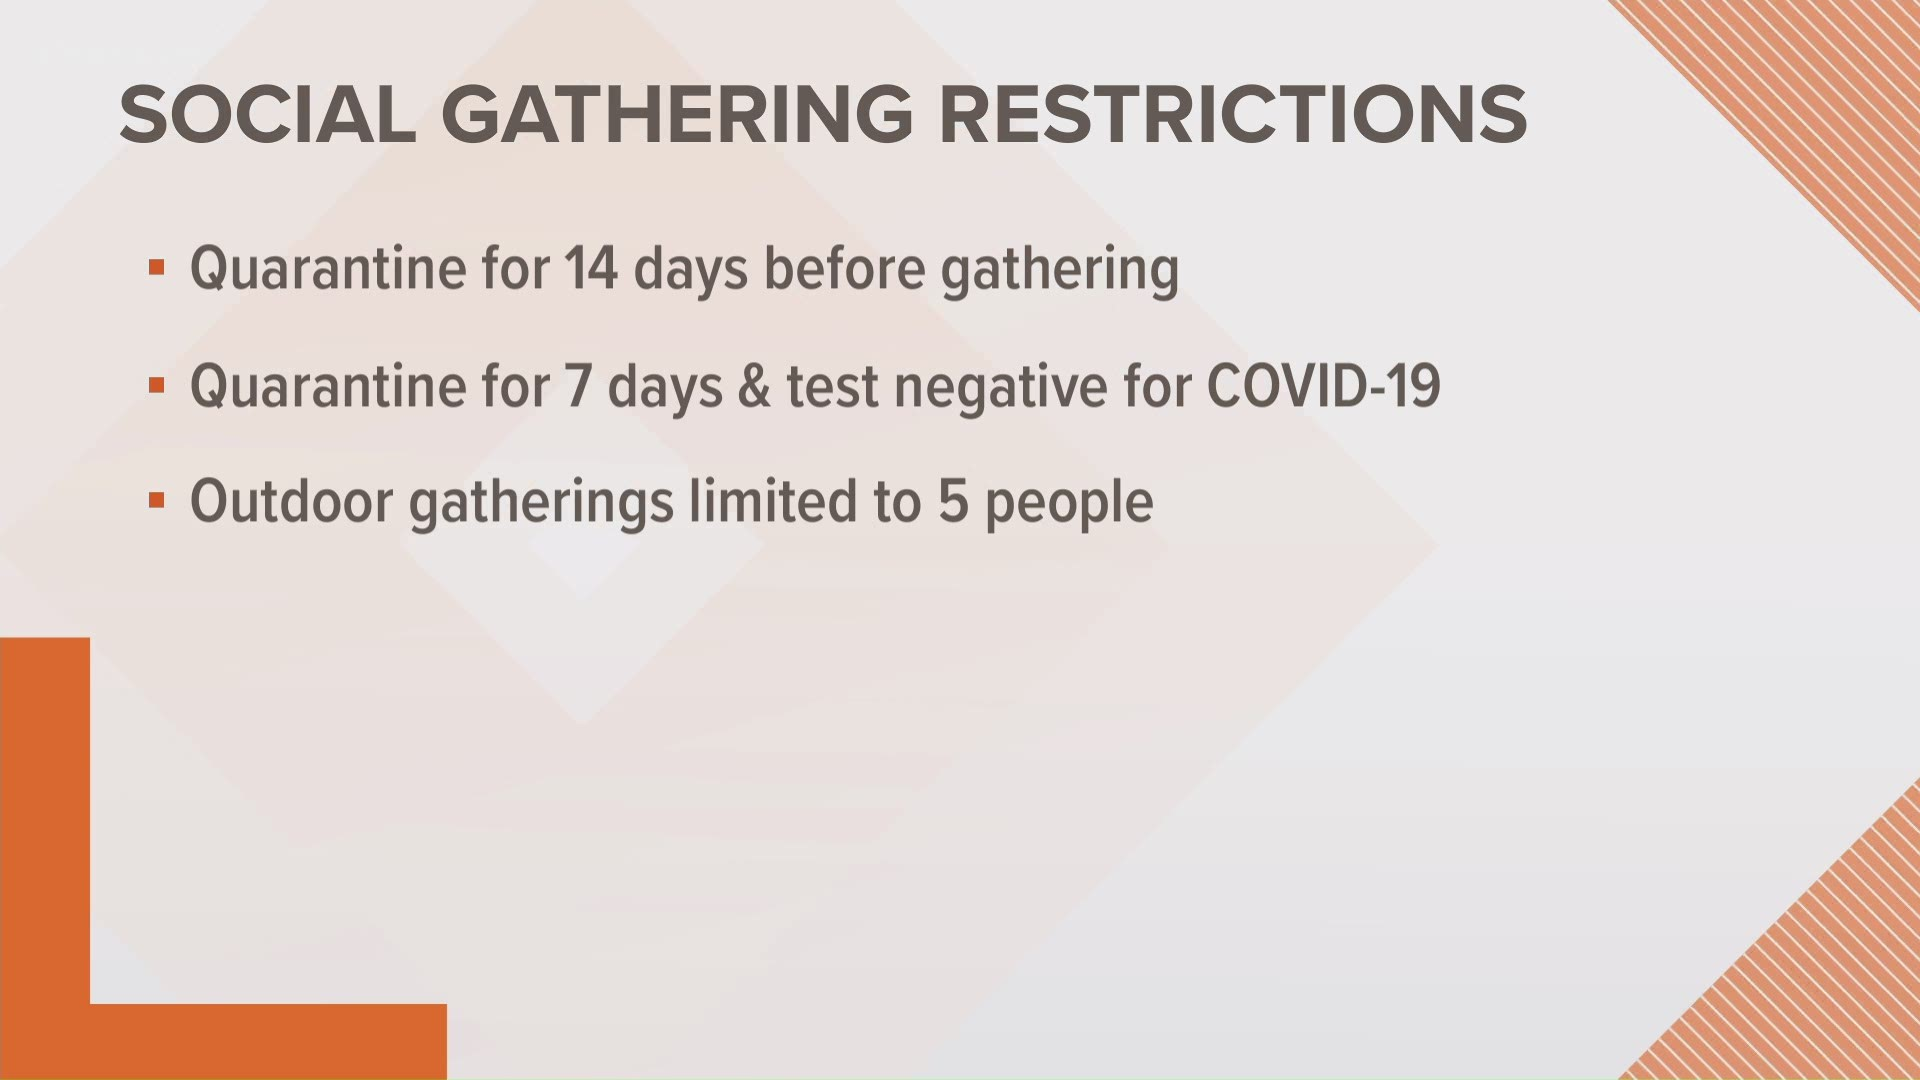 New Covid 19 Restrictions In Effect For Washington Stores Restaurants And Social Gatherings Abc10 Com